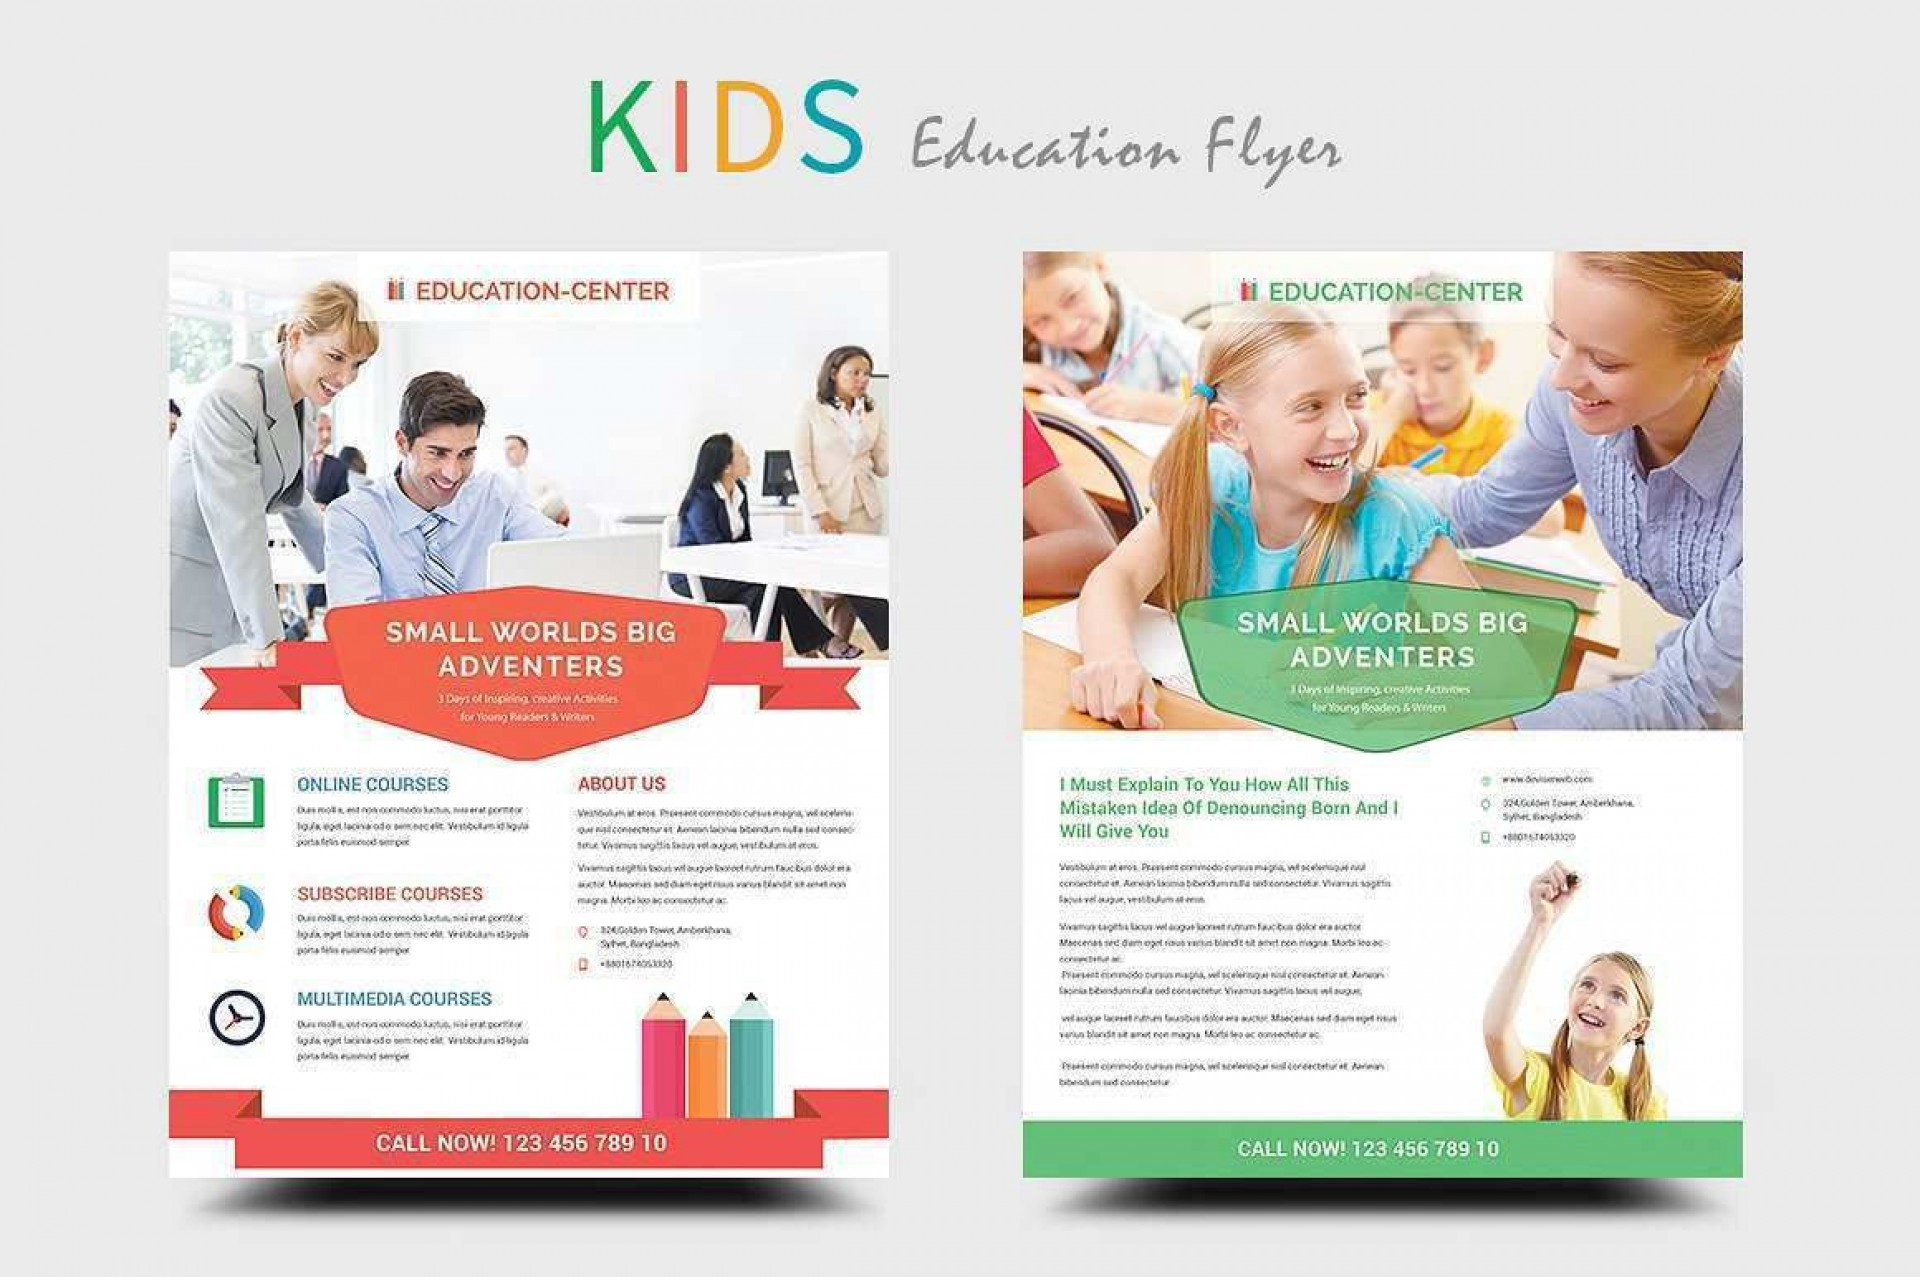 004 Impressive Free School Flyer Template Word Photo  For Microsoft Education Back To1920